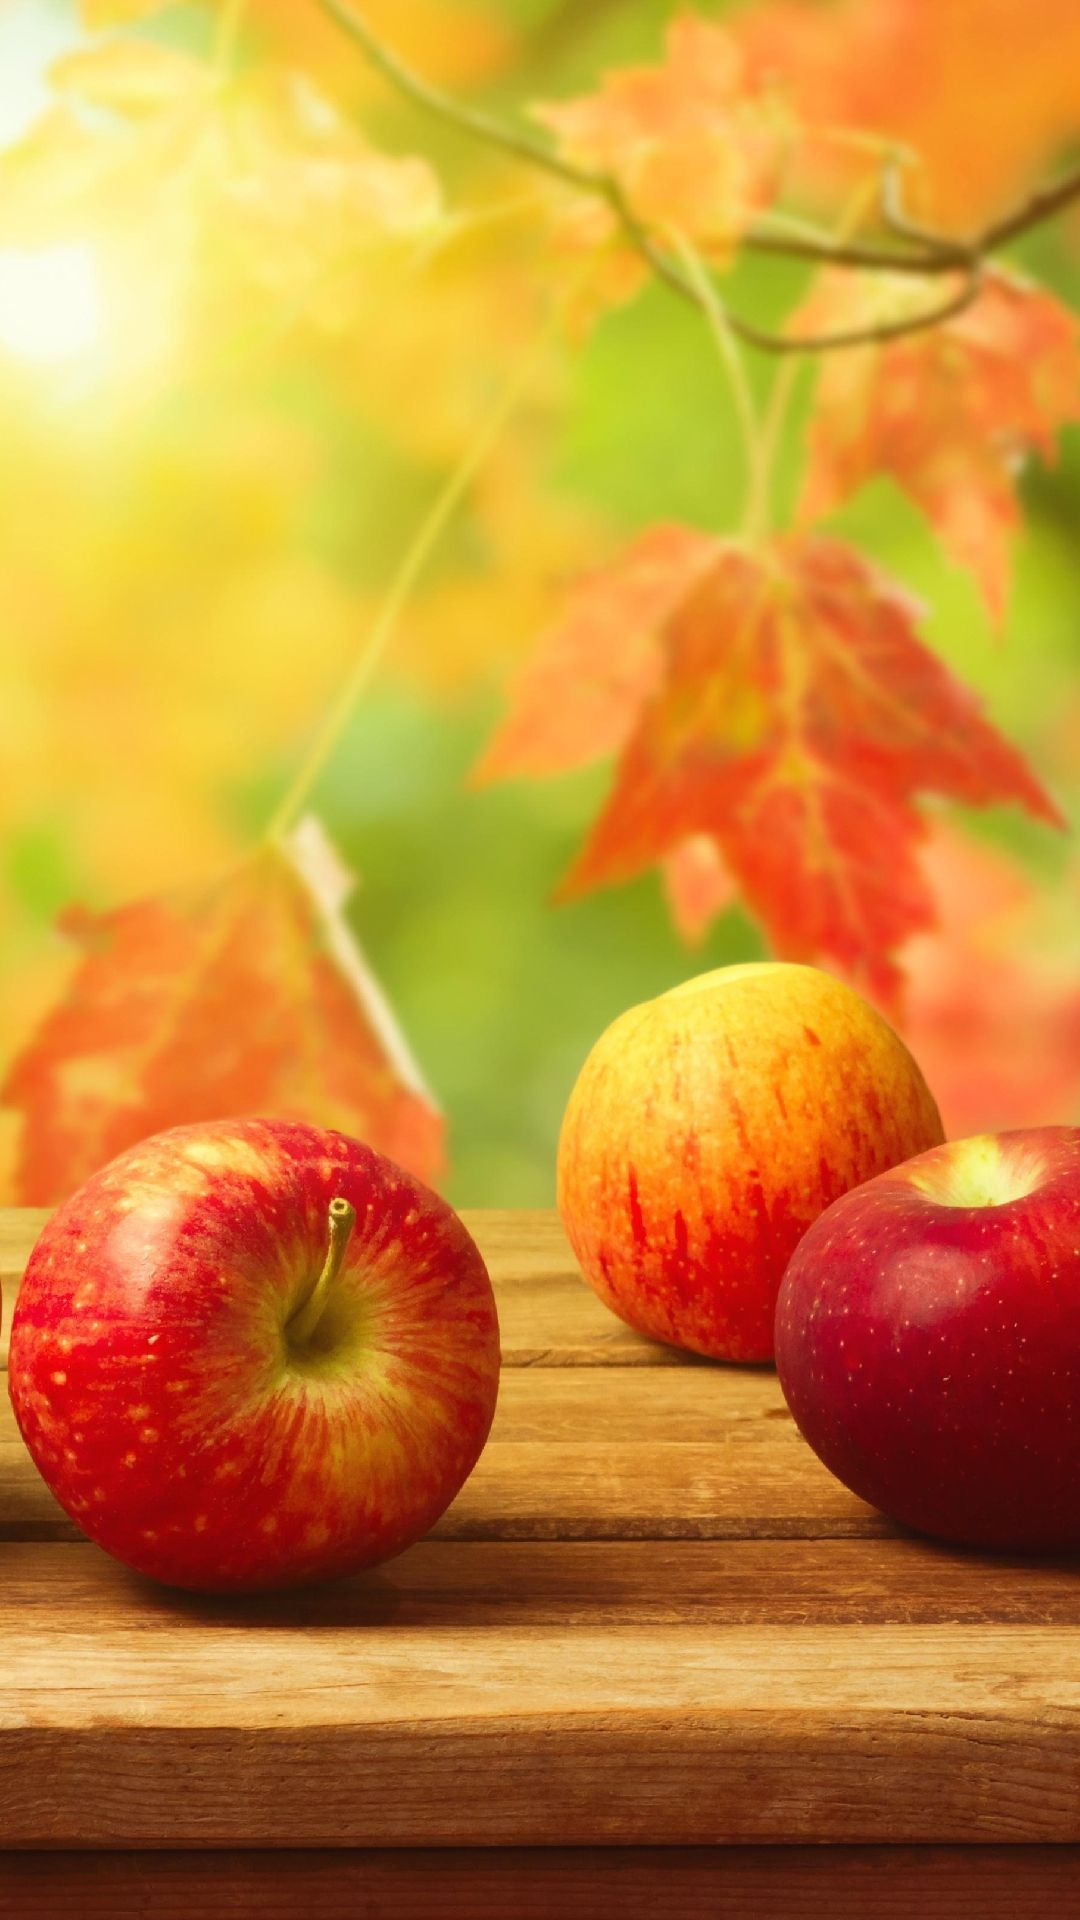 Autumn Apples Fall Apples Fall Wallpaper Fruit Photography